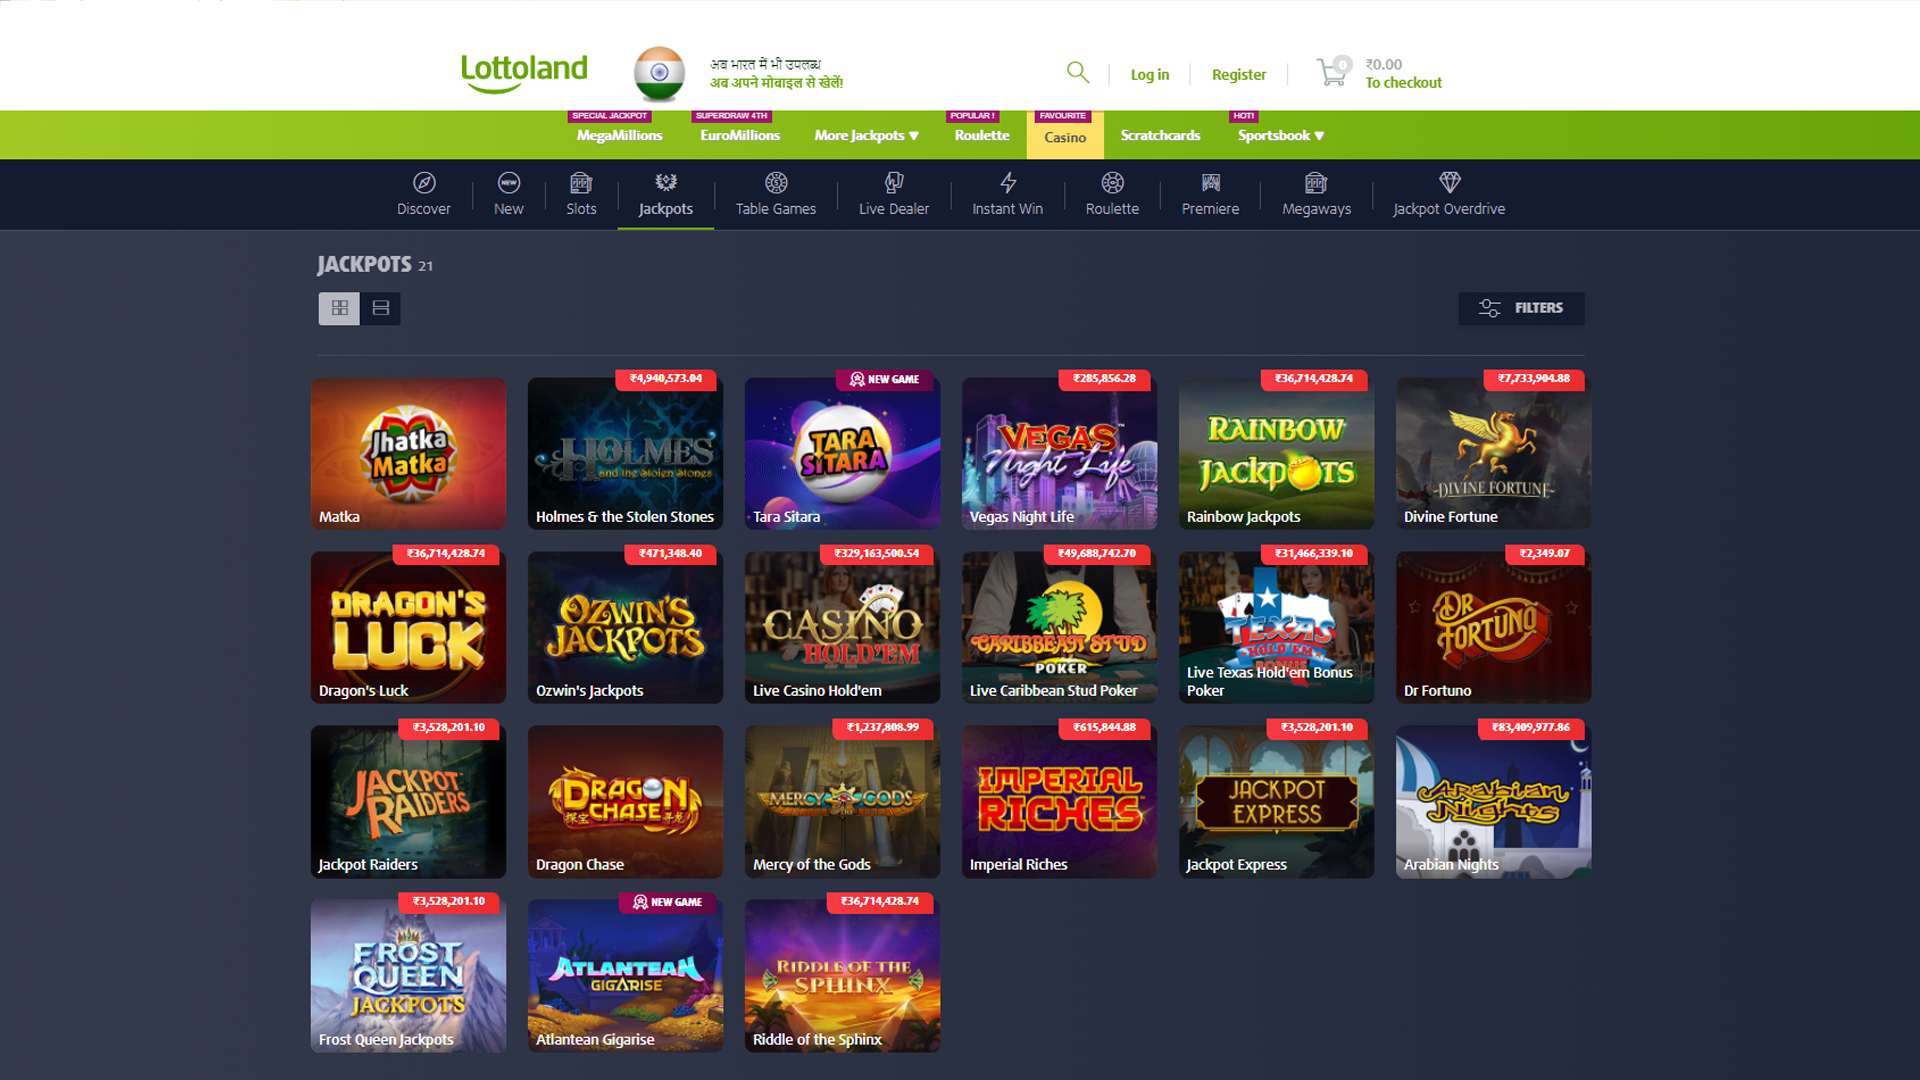 You can win a jackpot playing slots in the special section.